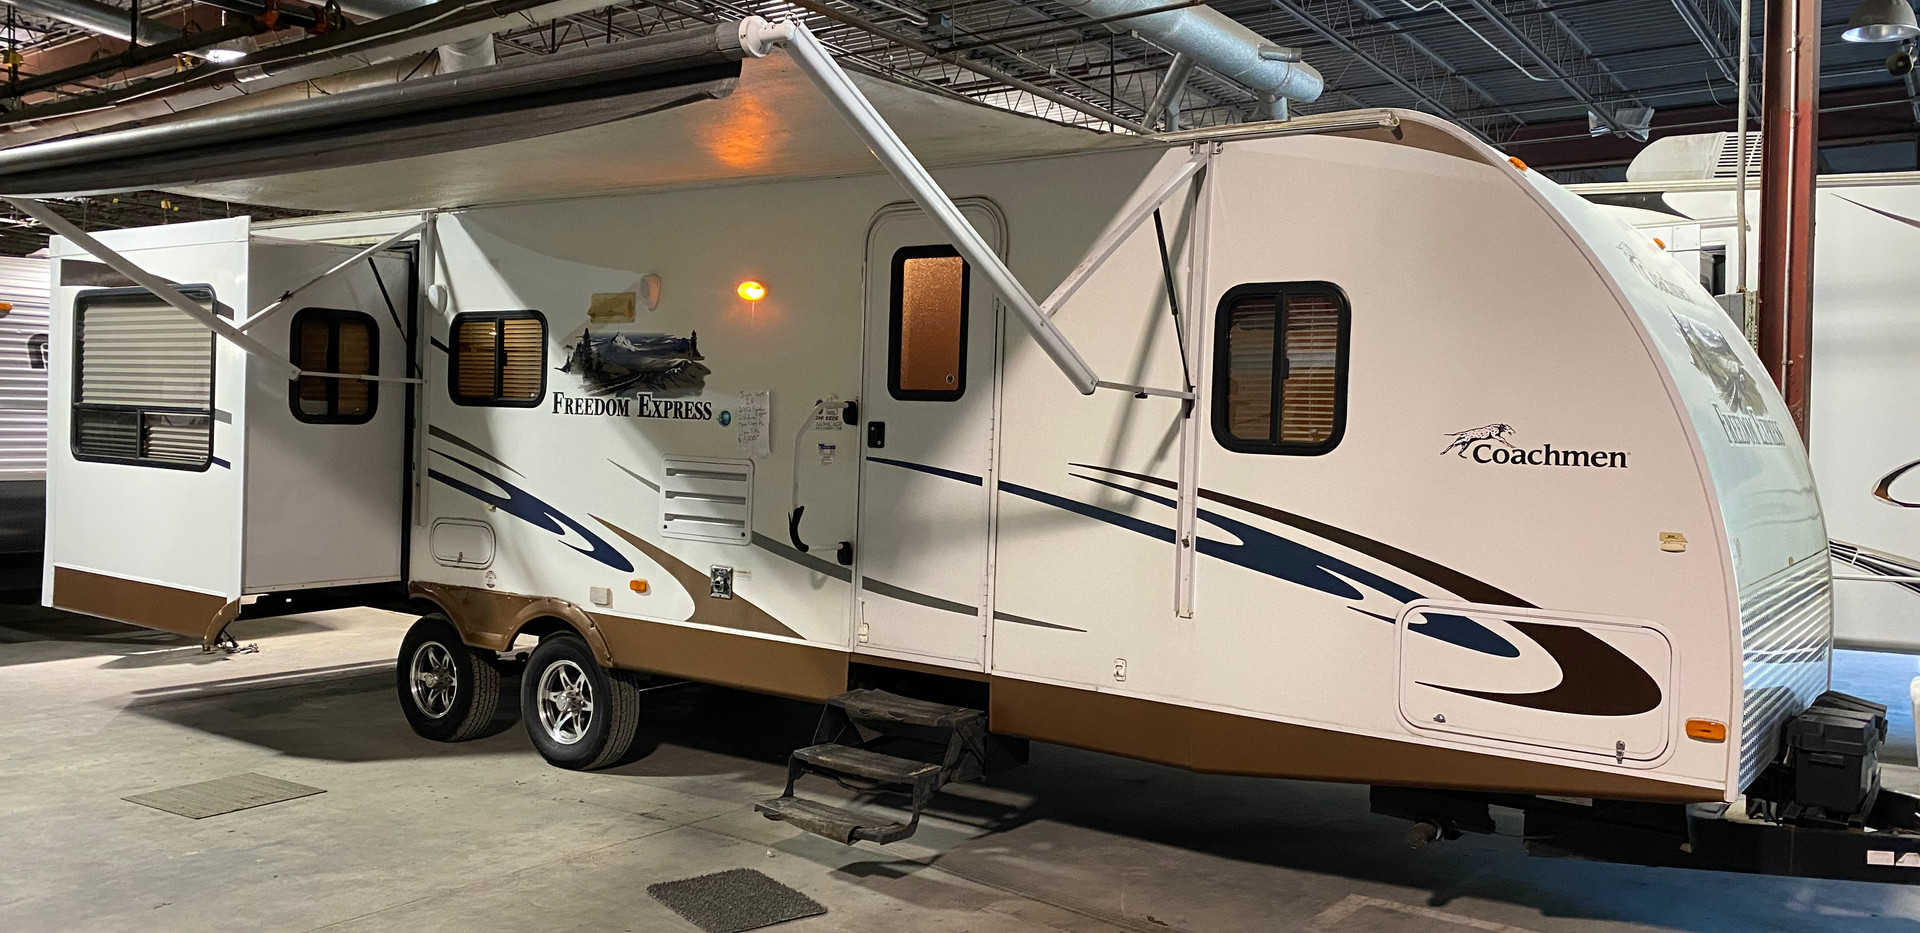 2012 Coachmen Freedom Express. Model number is 296REDS. It is 29ft long.  Dry weight is 6,800lbs. Does have two slideouts. Electric awning and electric jacks.  Very nice inside and out!!  Inside opens up to a very spacious open floor plan. Tv slides down into the cabinet. Nice size bathroom with walk in shower. Queen bedroom up front!  Does have a CLEAN TITLE!  Asking $15,800.